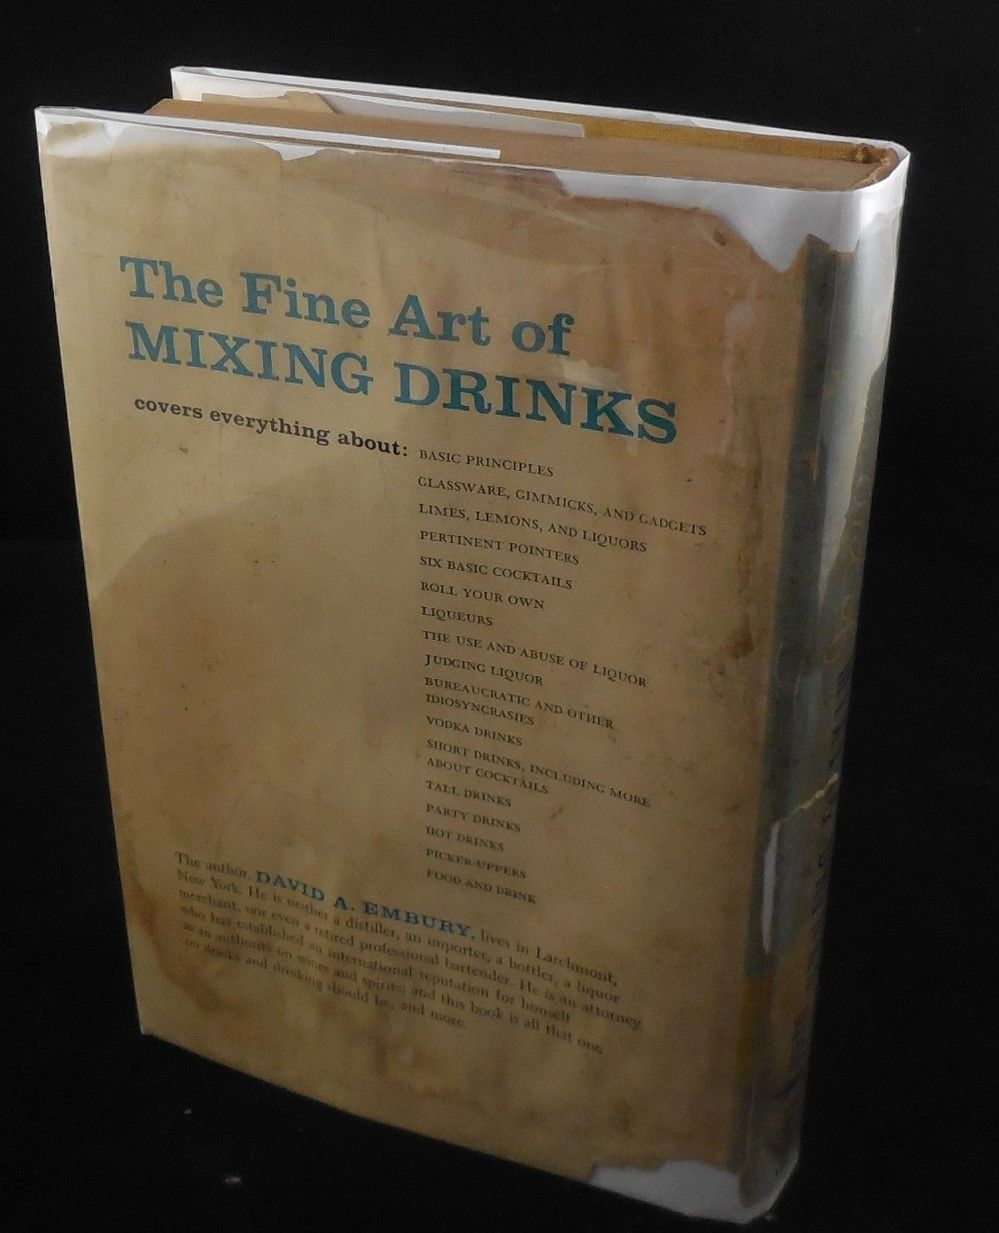 THE FINE ART OF MIXING DRINKS, by David A. Embury - 1958 [3rd Ed]